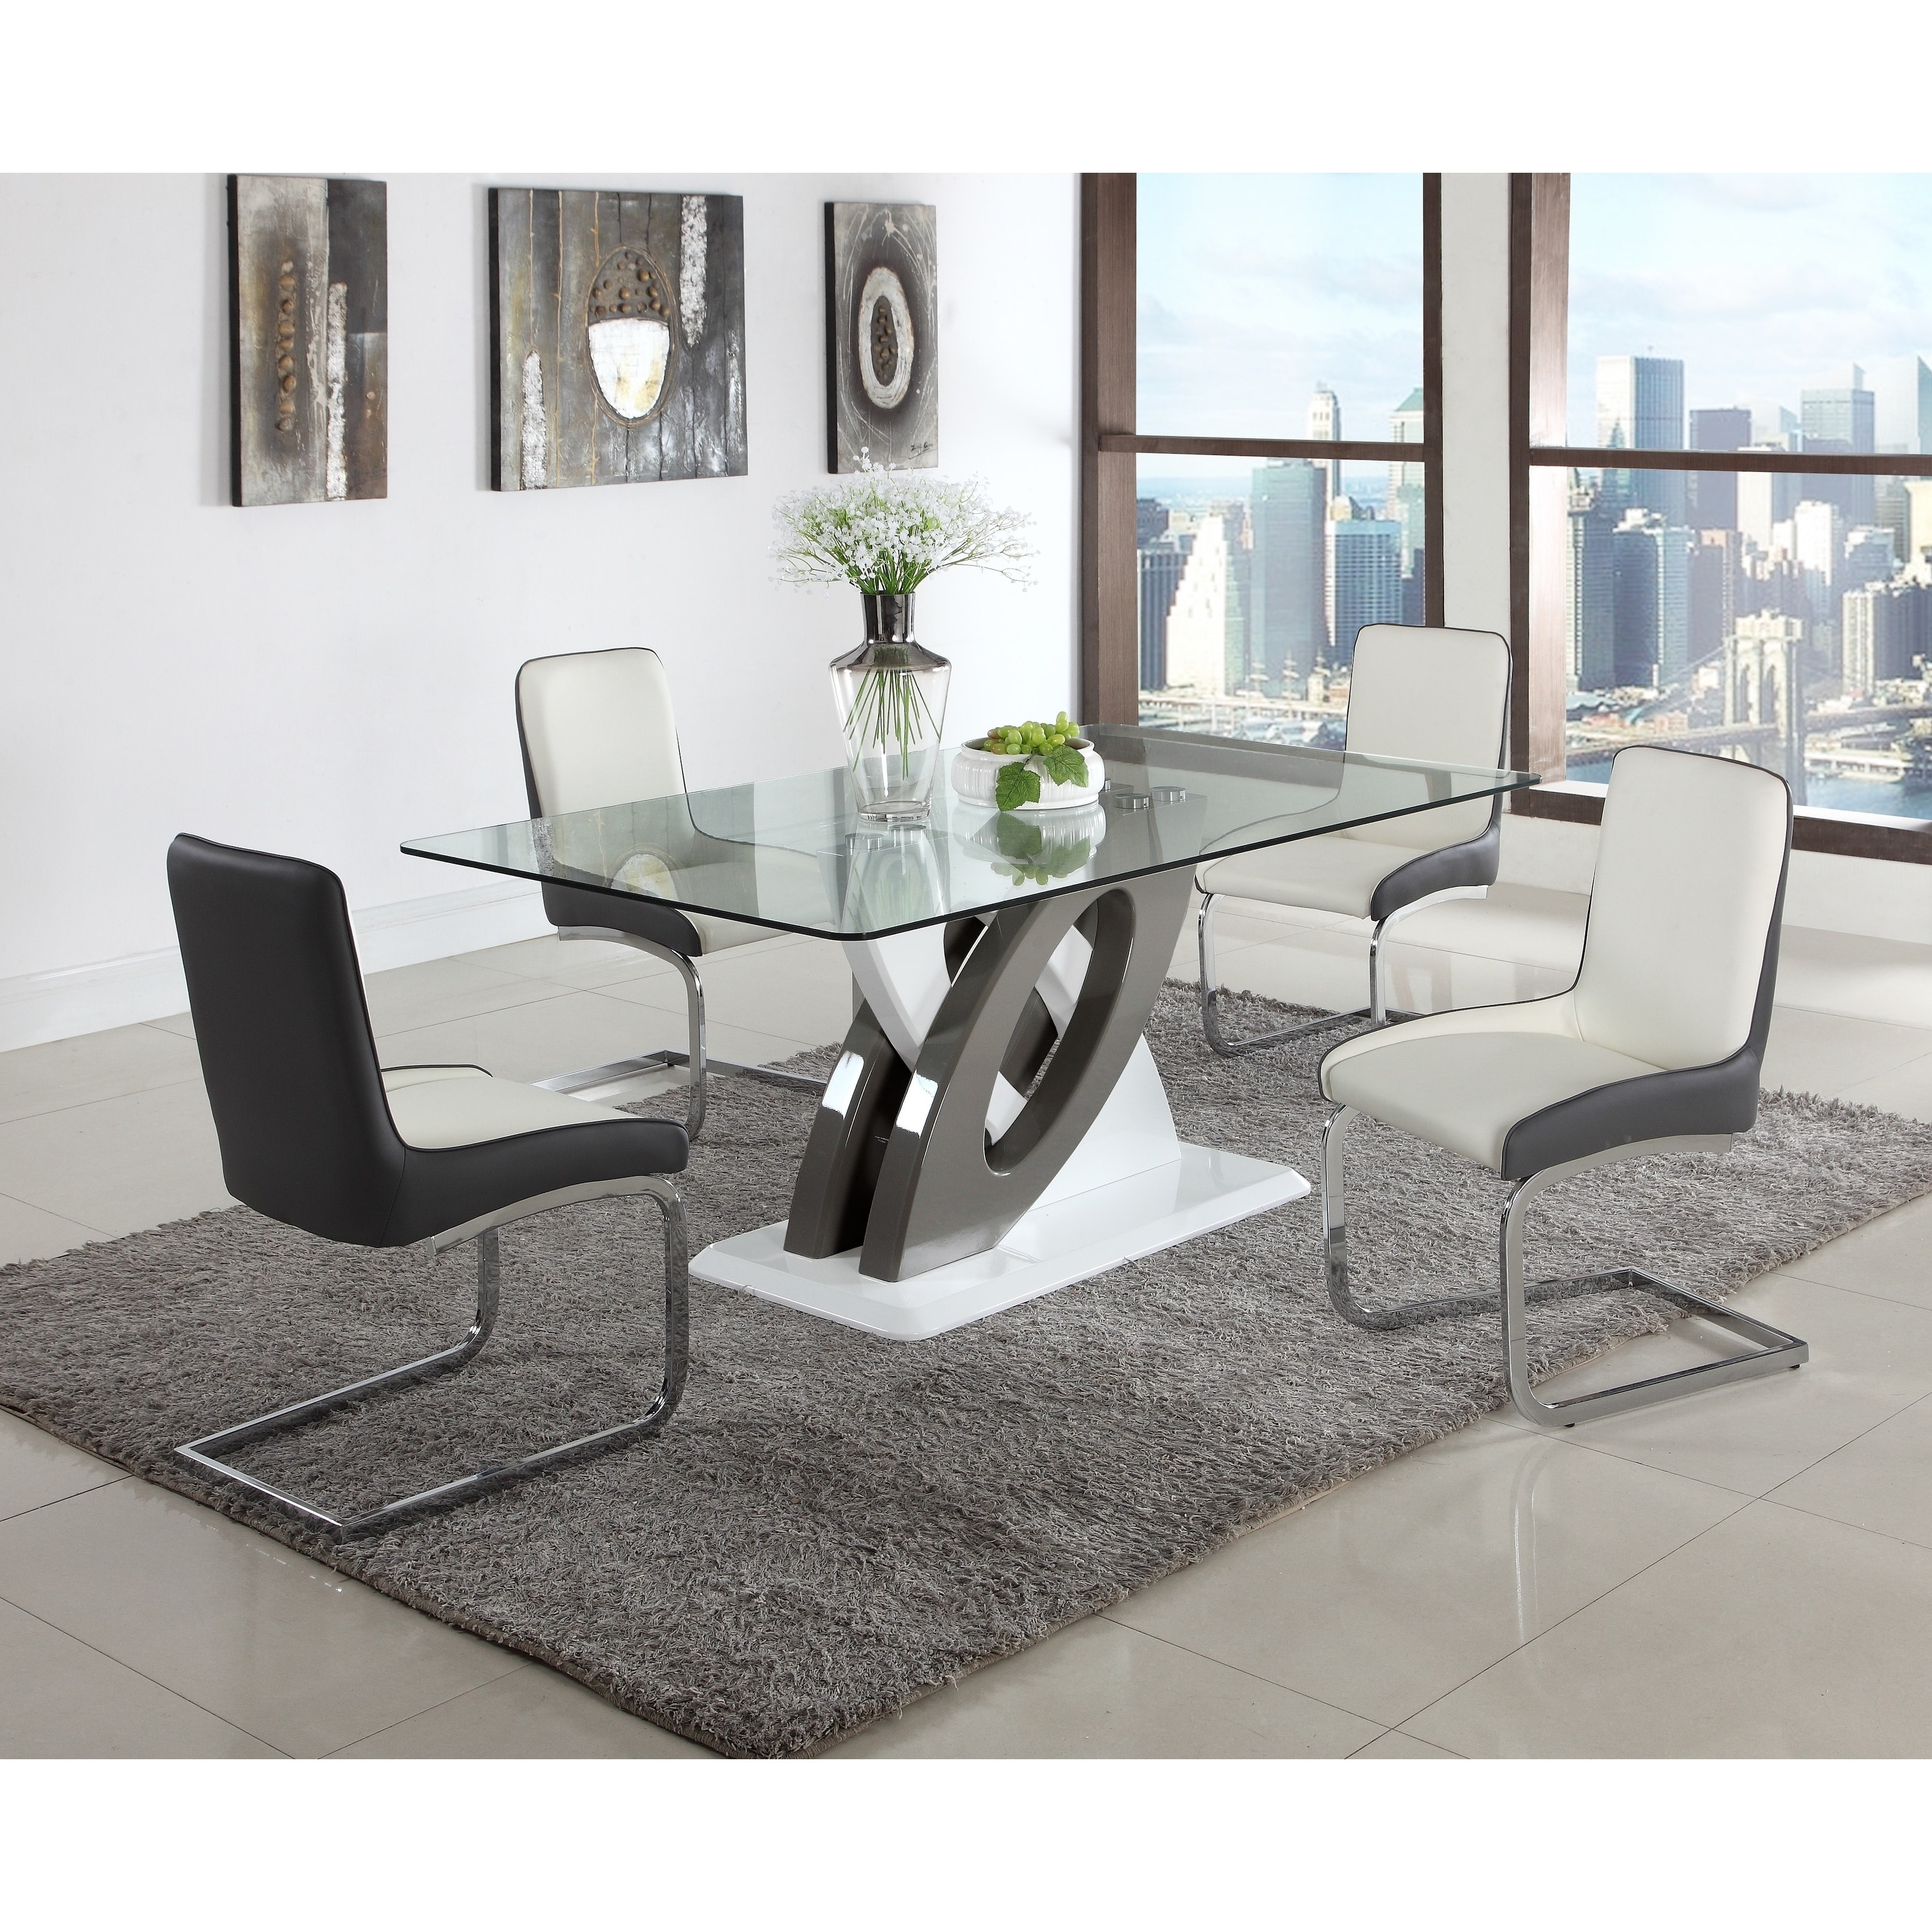 Shop Somette Sophie Glass Top Dining Table Greywhite Free